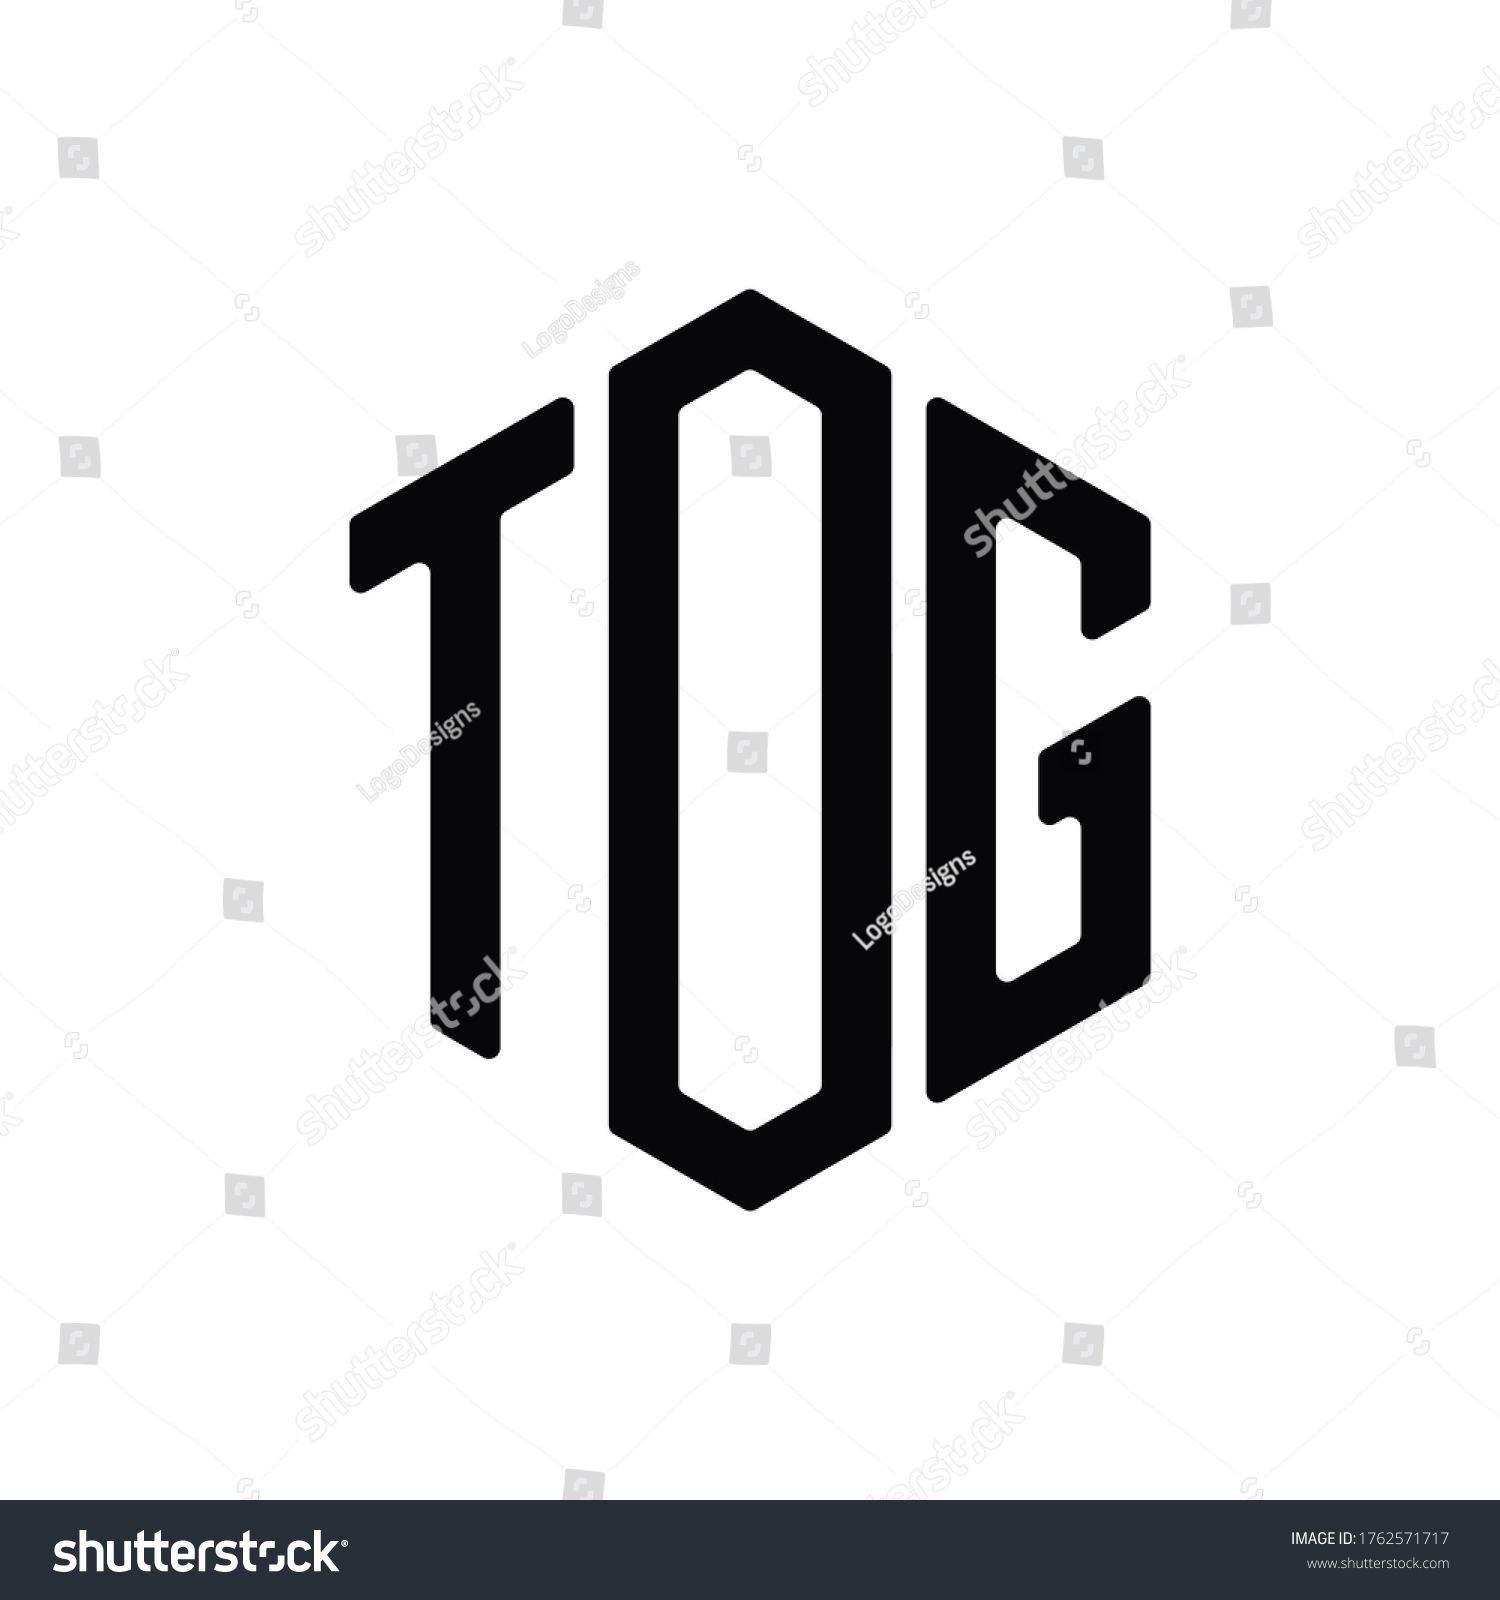 tog letter logo design polygon rounded stock vector (royalty free)  1762571717  shutterstock